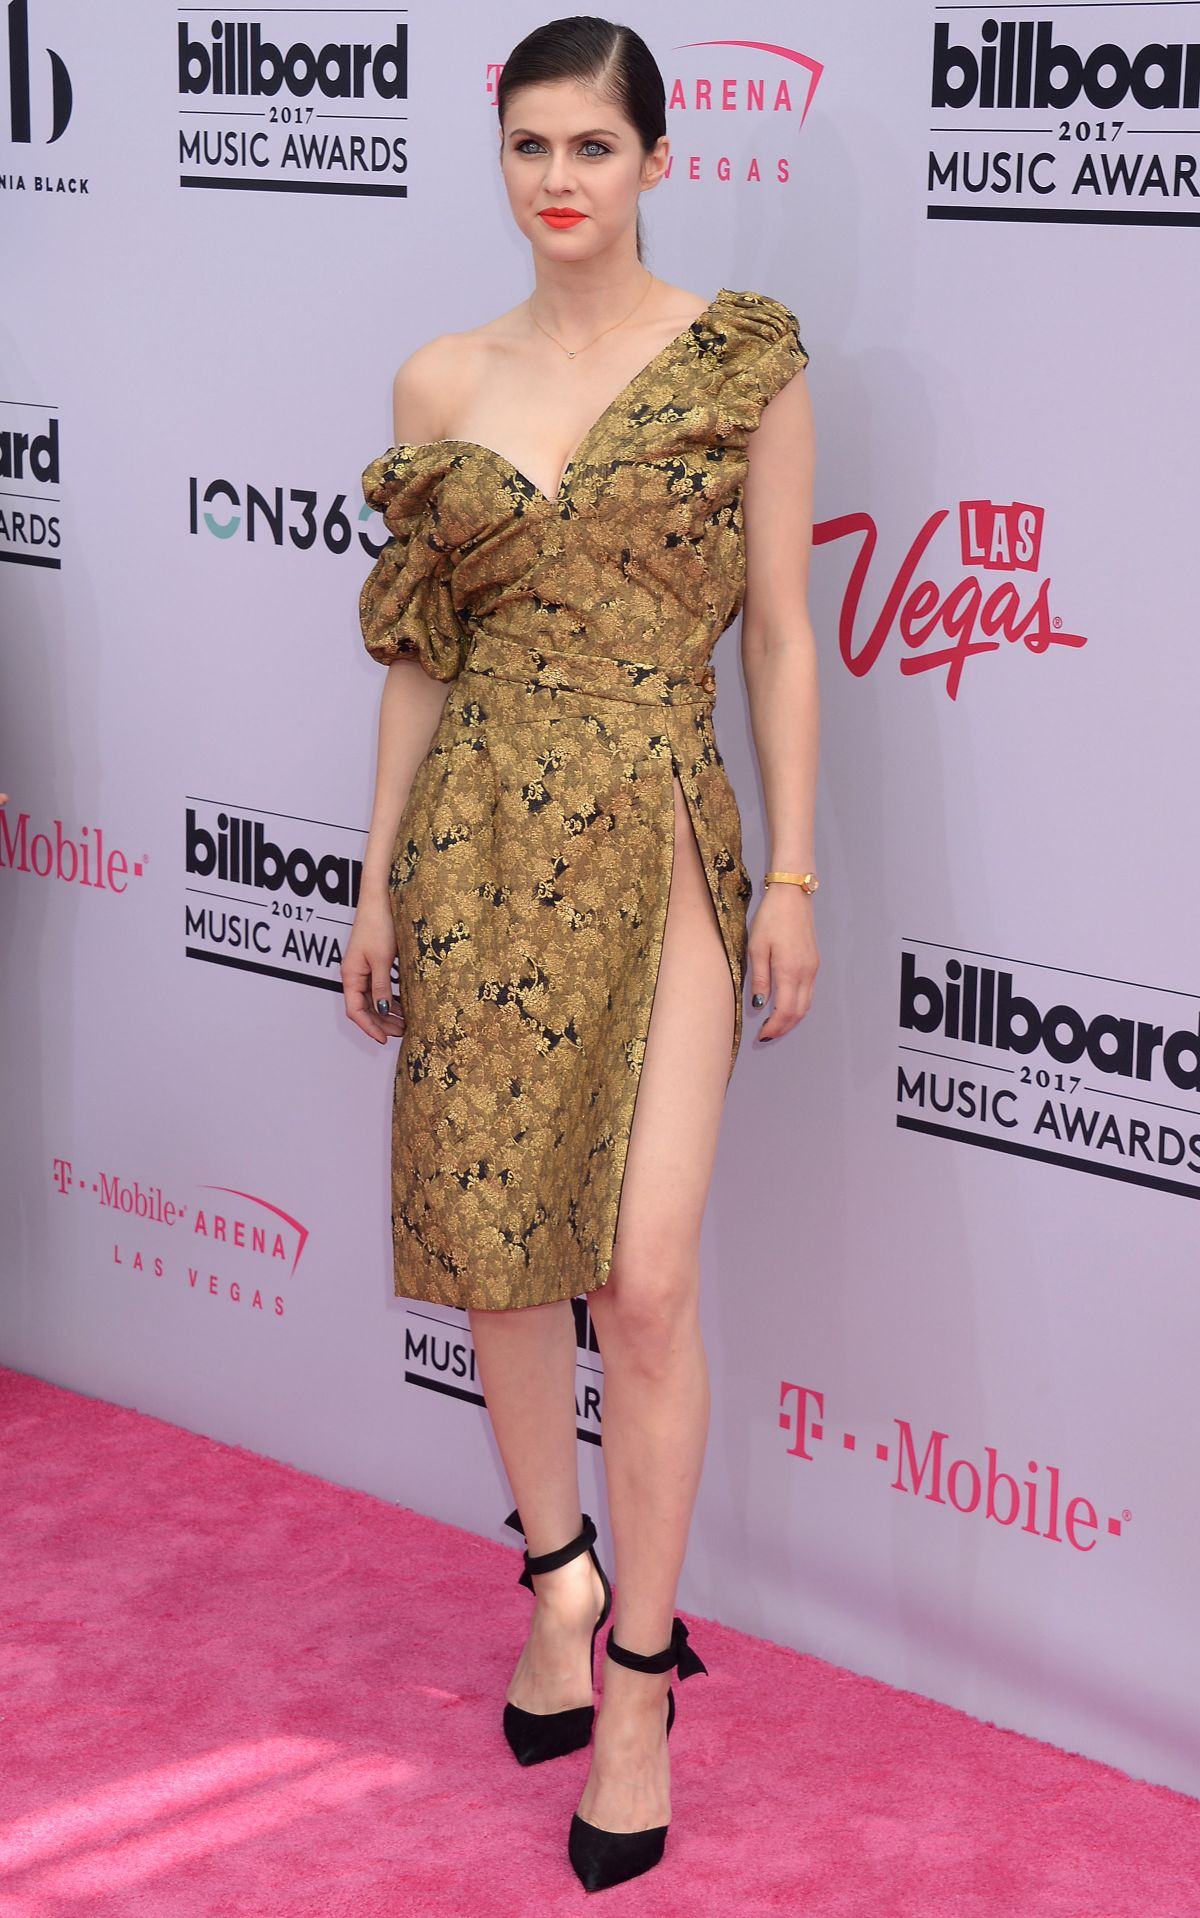 ALEXANDRA DADDARIO at Billboard Music Awards 2017 in Las Vegas 05/21/2017